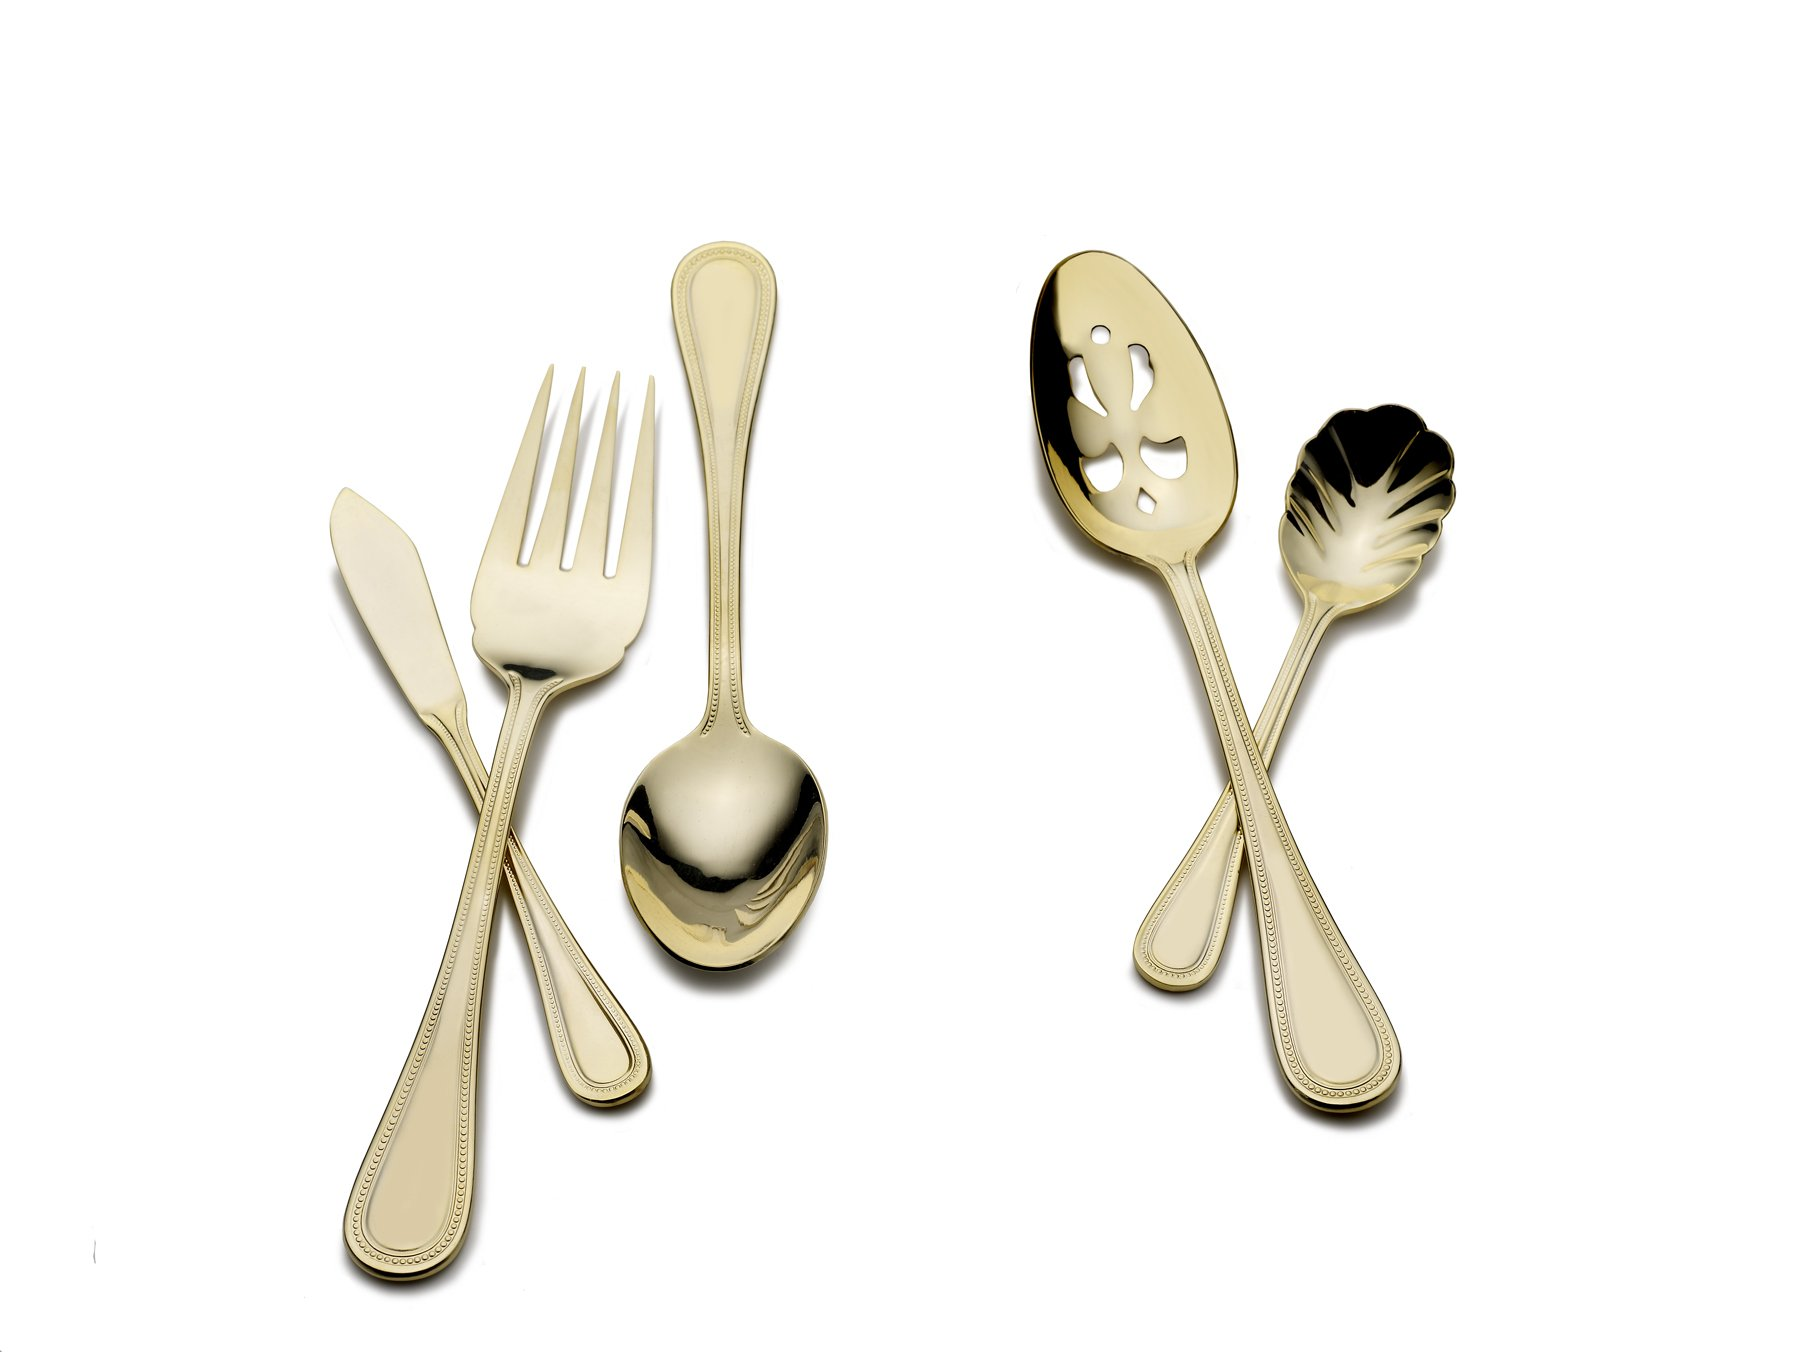 Wallace 5085029 Continental Bead Gold-Plated 65-Piece Stainless Steel Flatware Set with Hostess Set, Service for 8